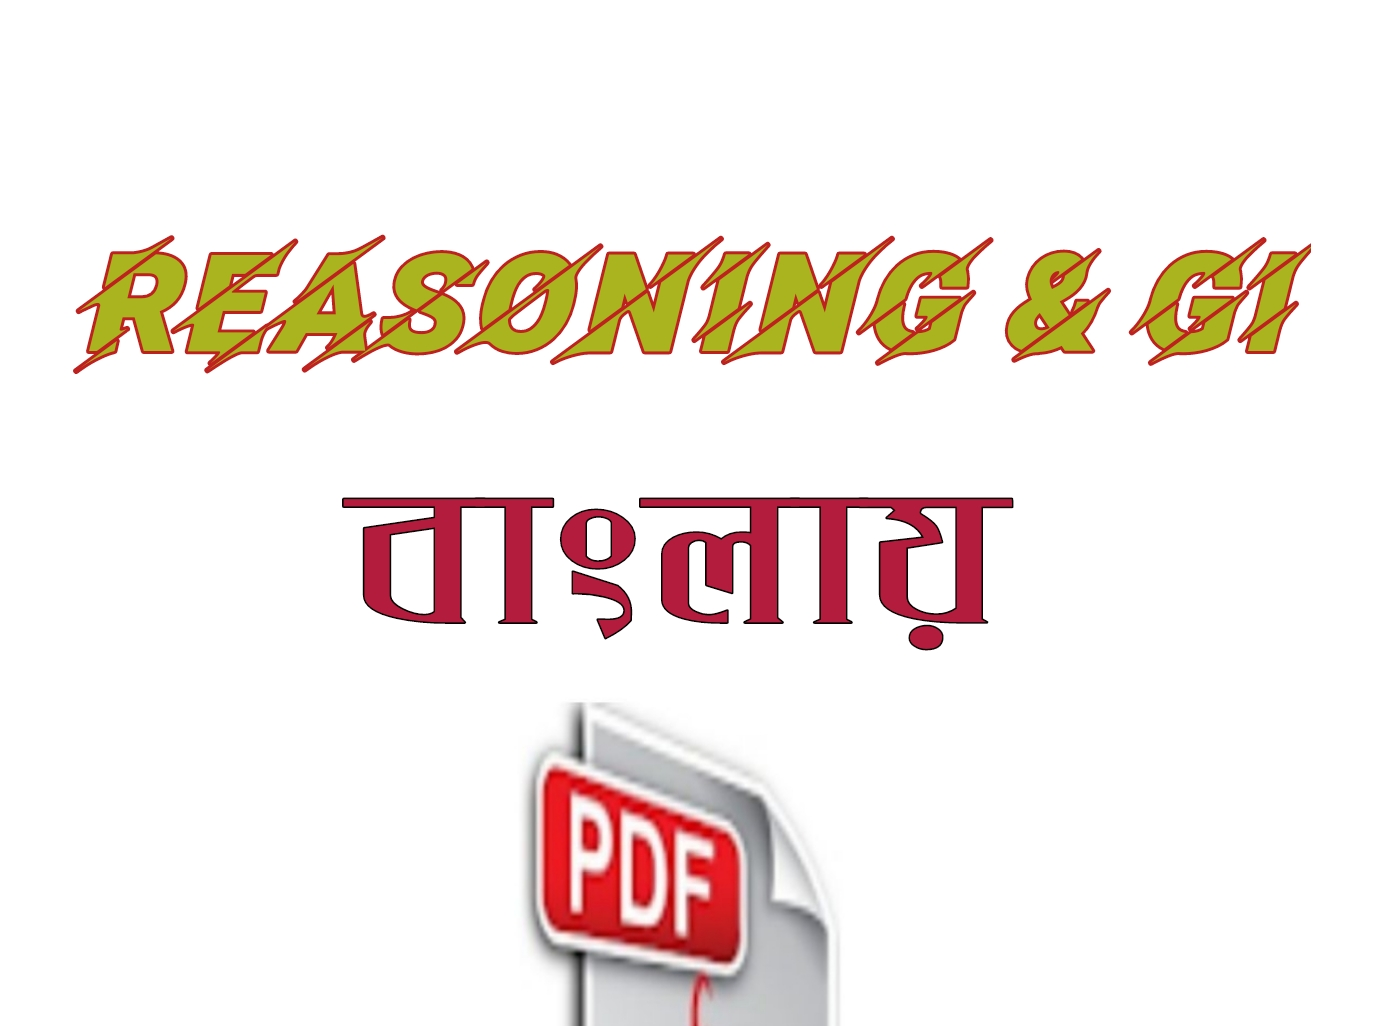 Bengali General Intelligence and Reasoning PDF Book for Competitive exams like wbcs, wbssc,primary,ssc, Group D, clark,rail etc